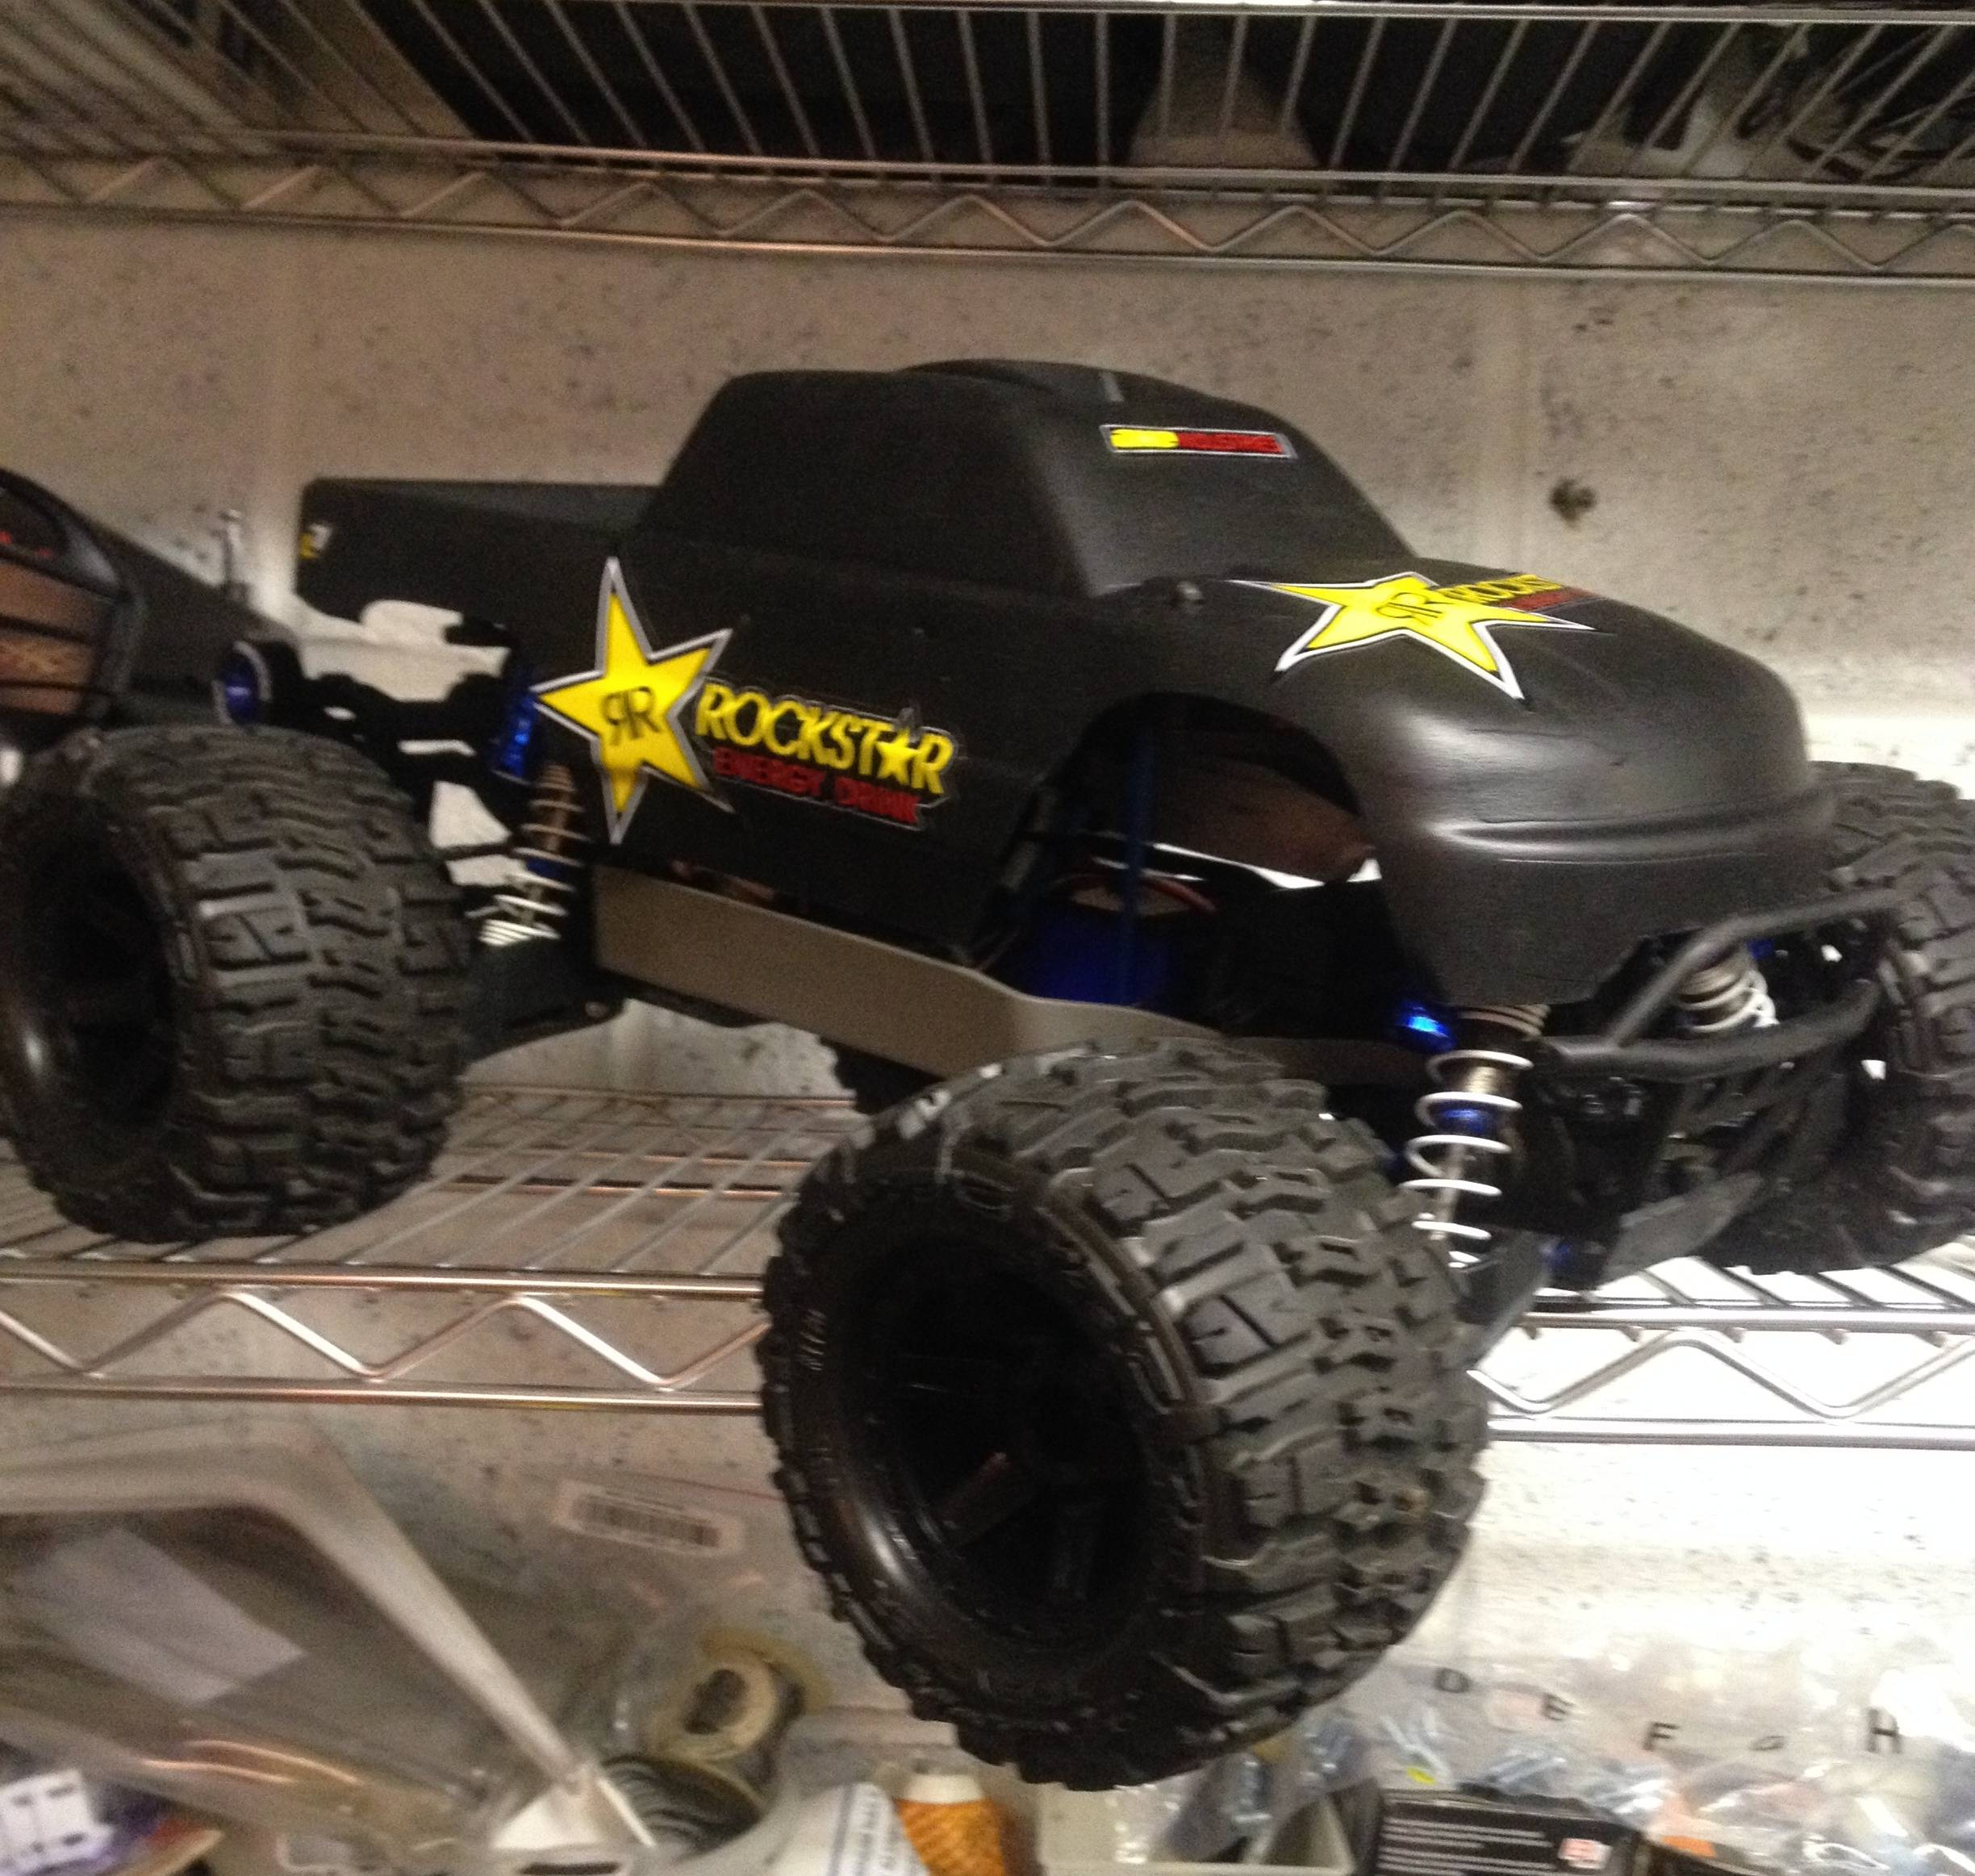 plasti diped stock traxxas stampede body and picked up some rockstar stickers off ebay